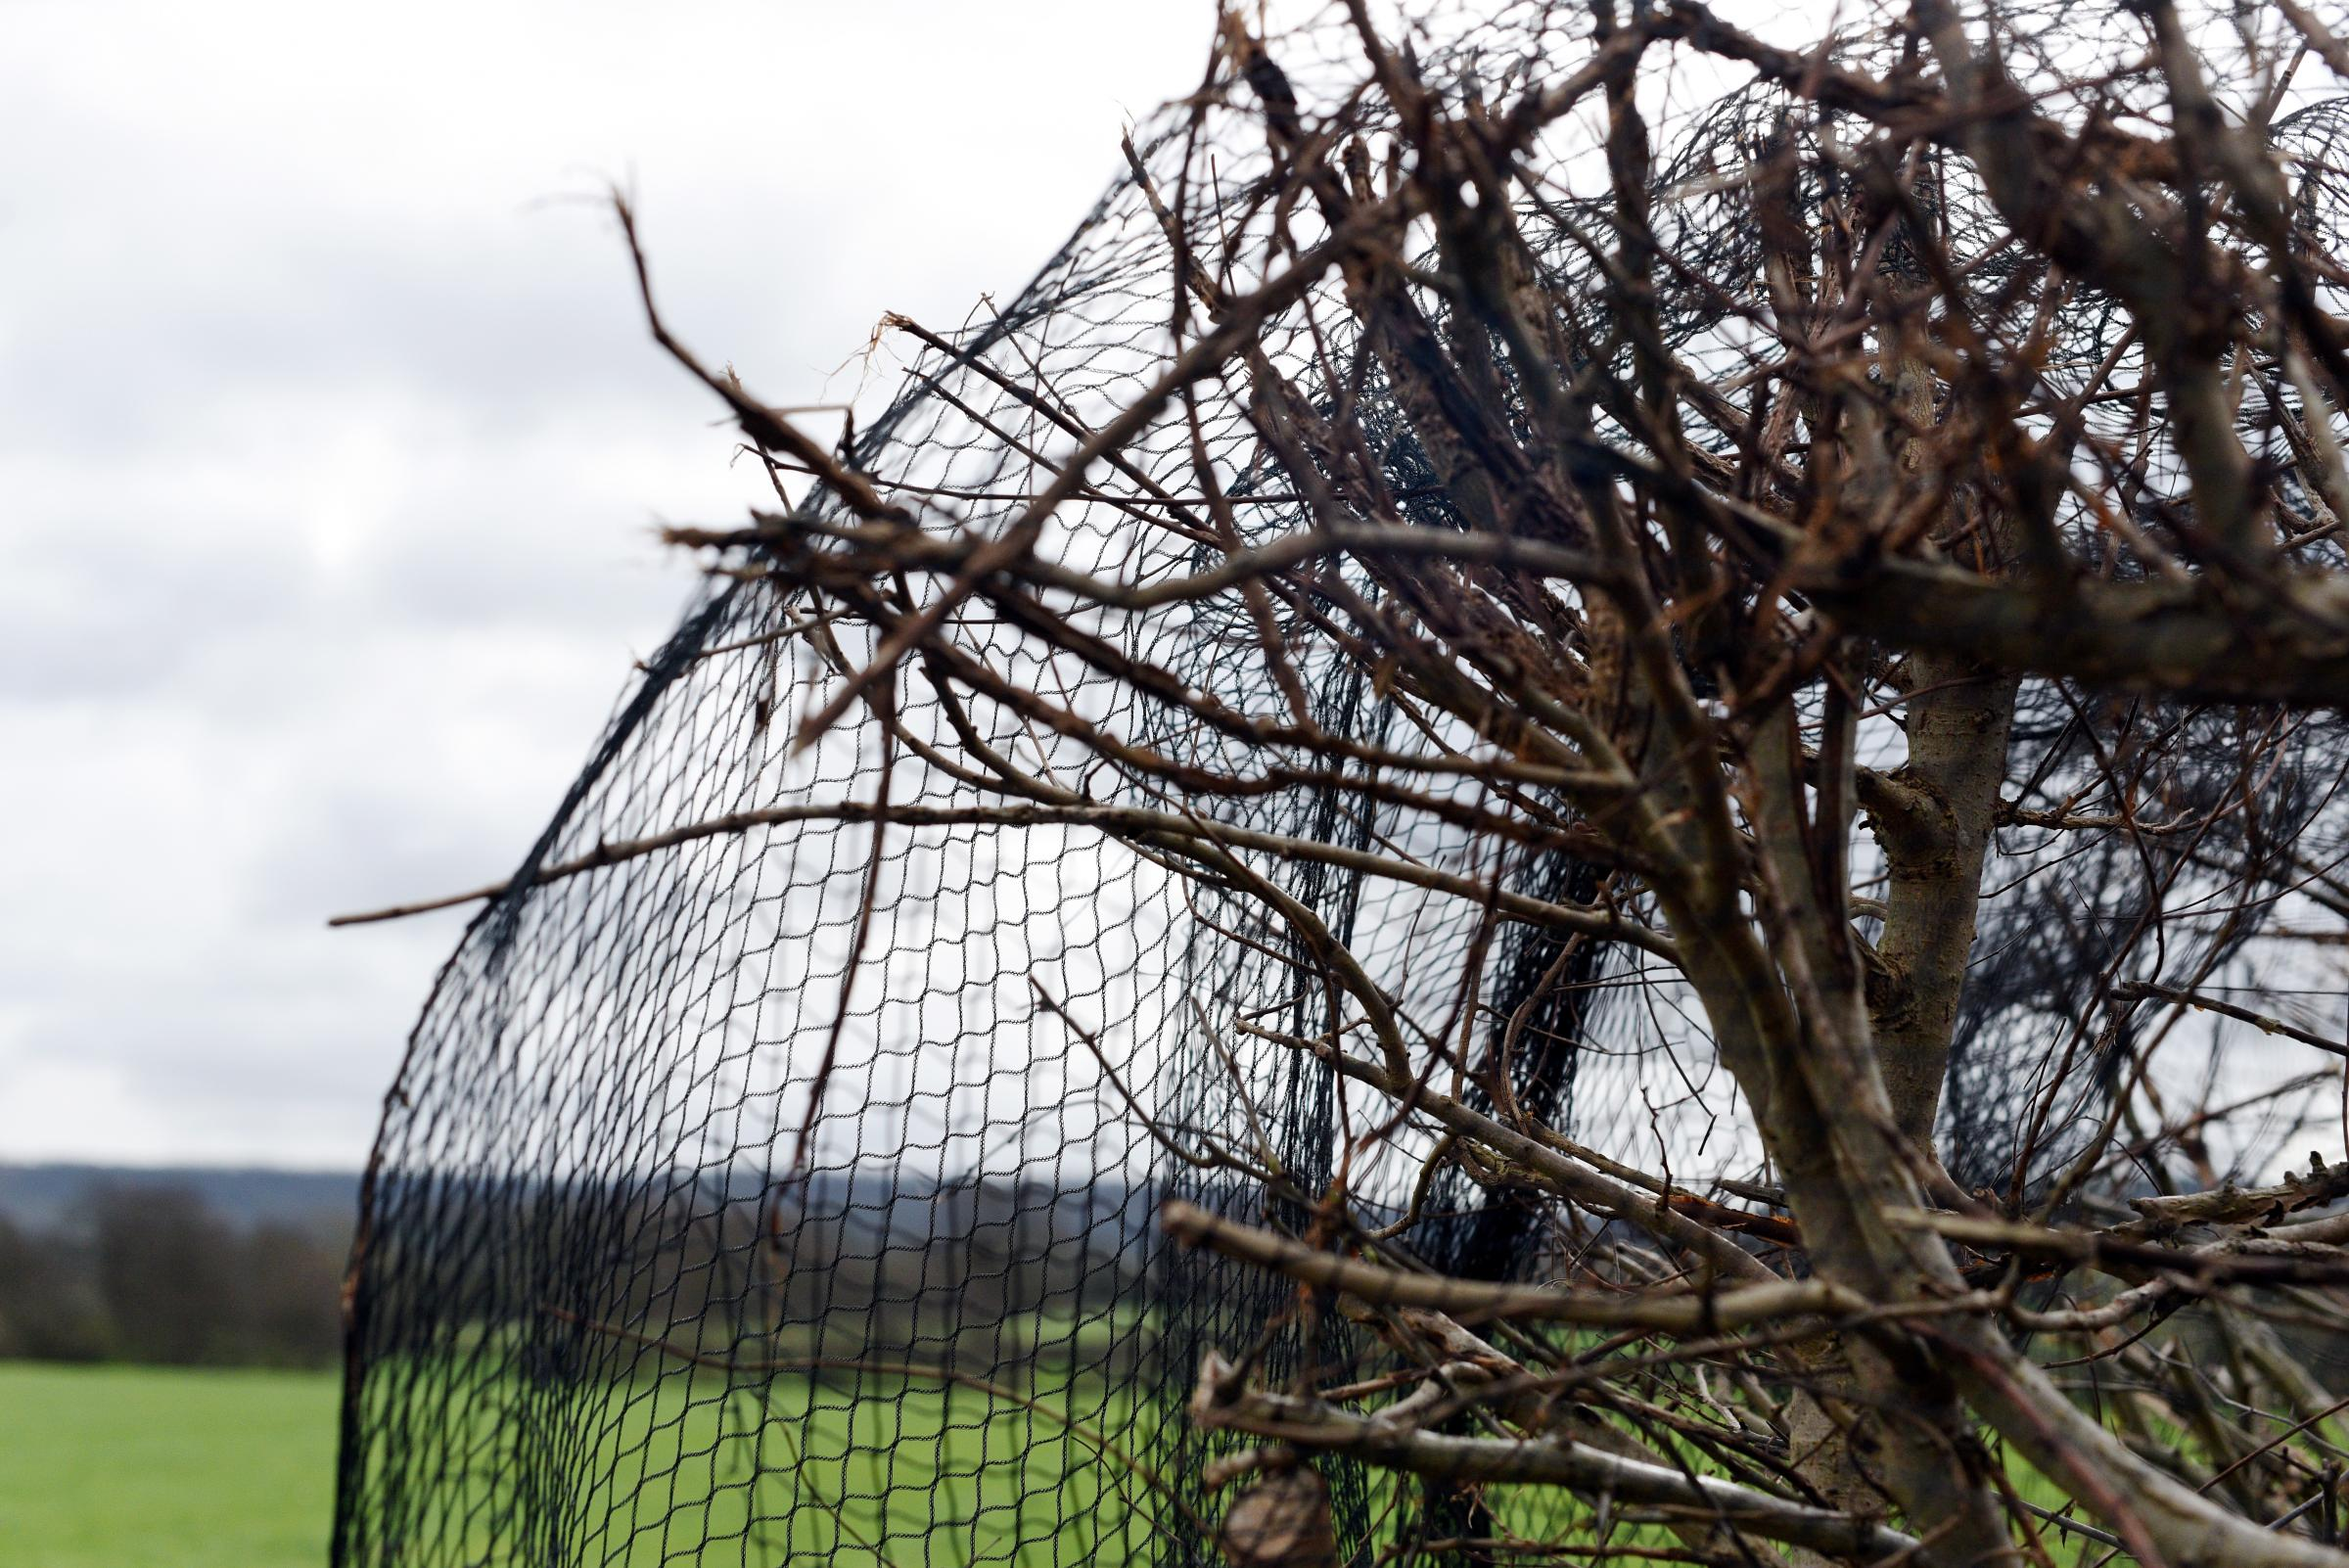 Reports of birds and rabbits caught in anti-nesting netting